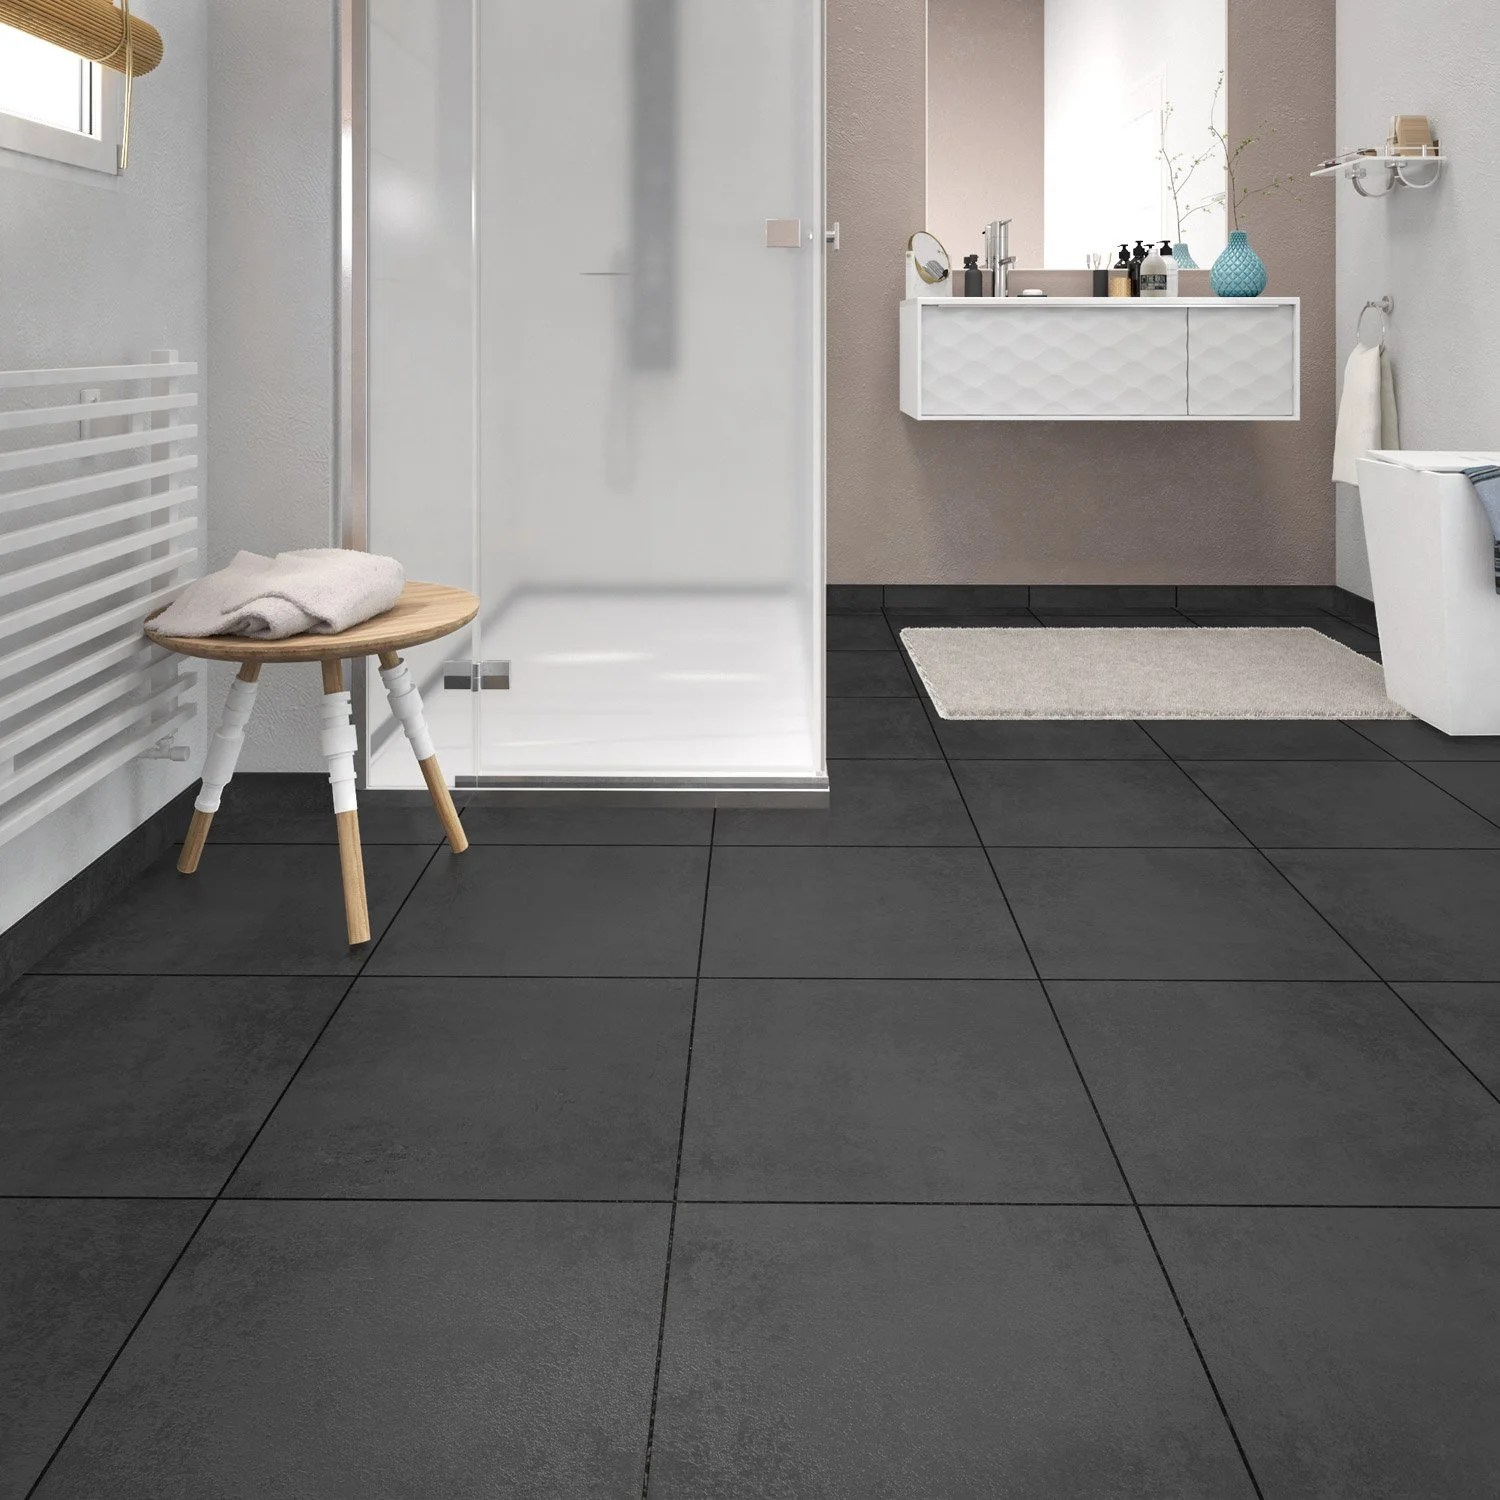 Carrelage Noir Leroy Merlin Carrelage Noir Brillant Leroy Merlin Affordable Credence